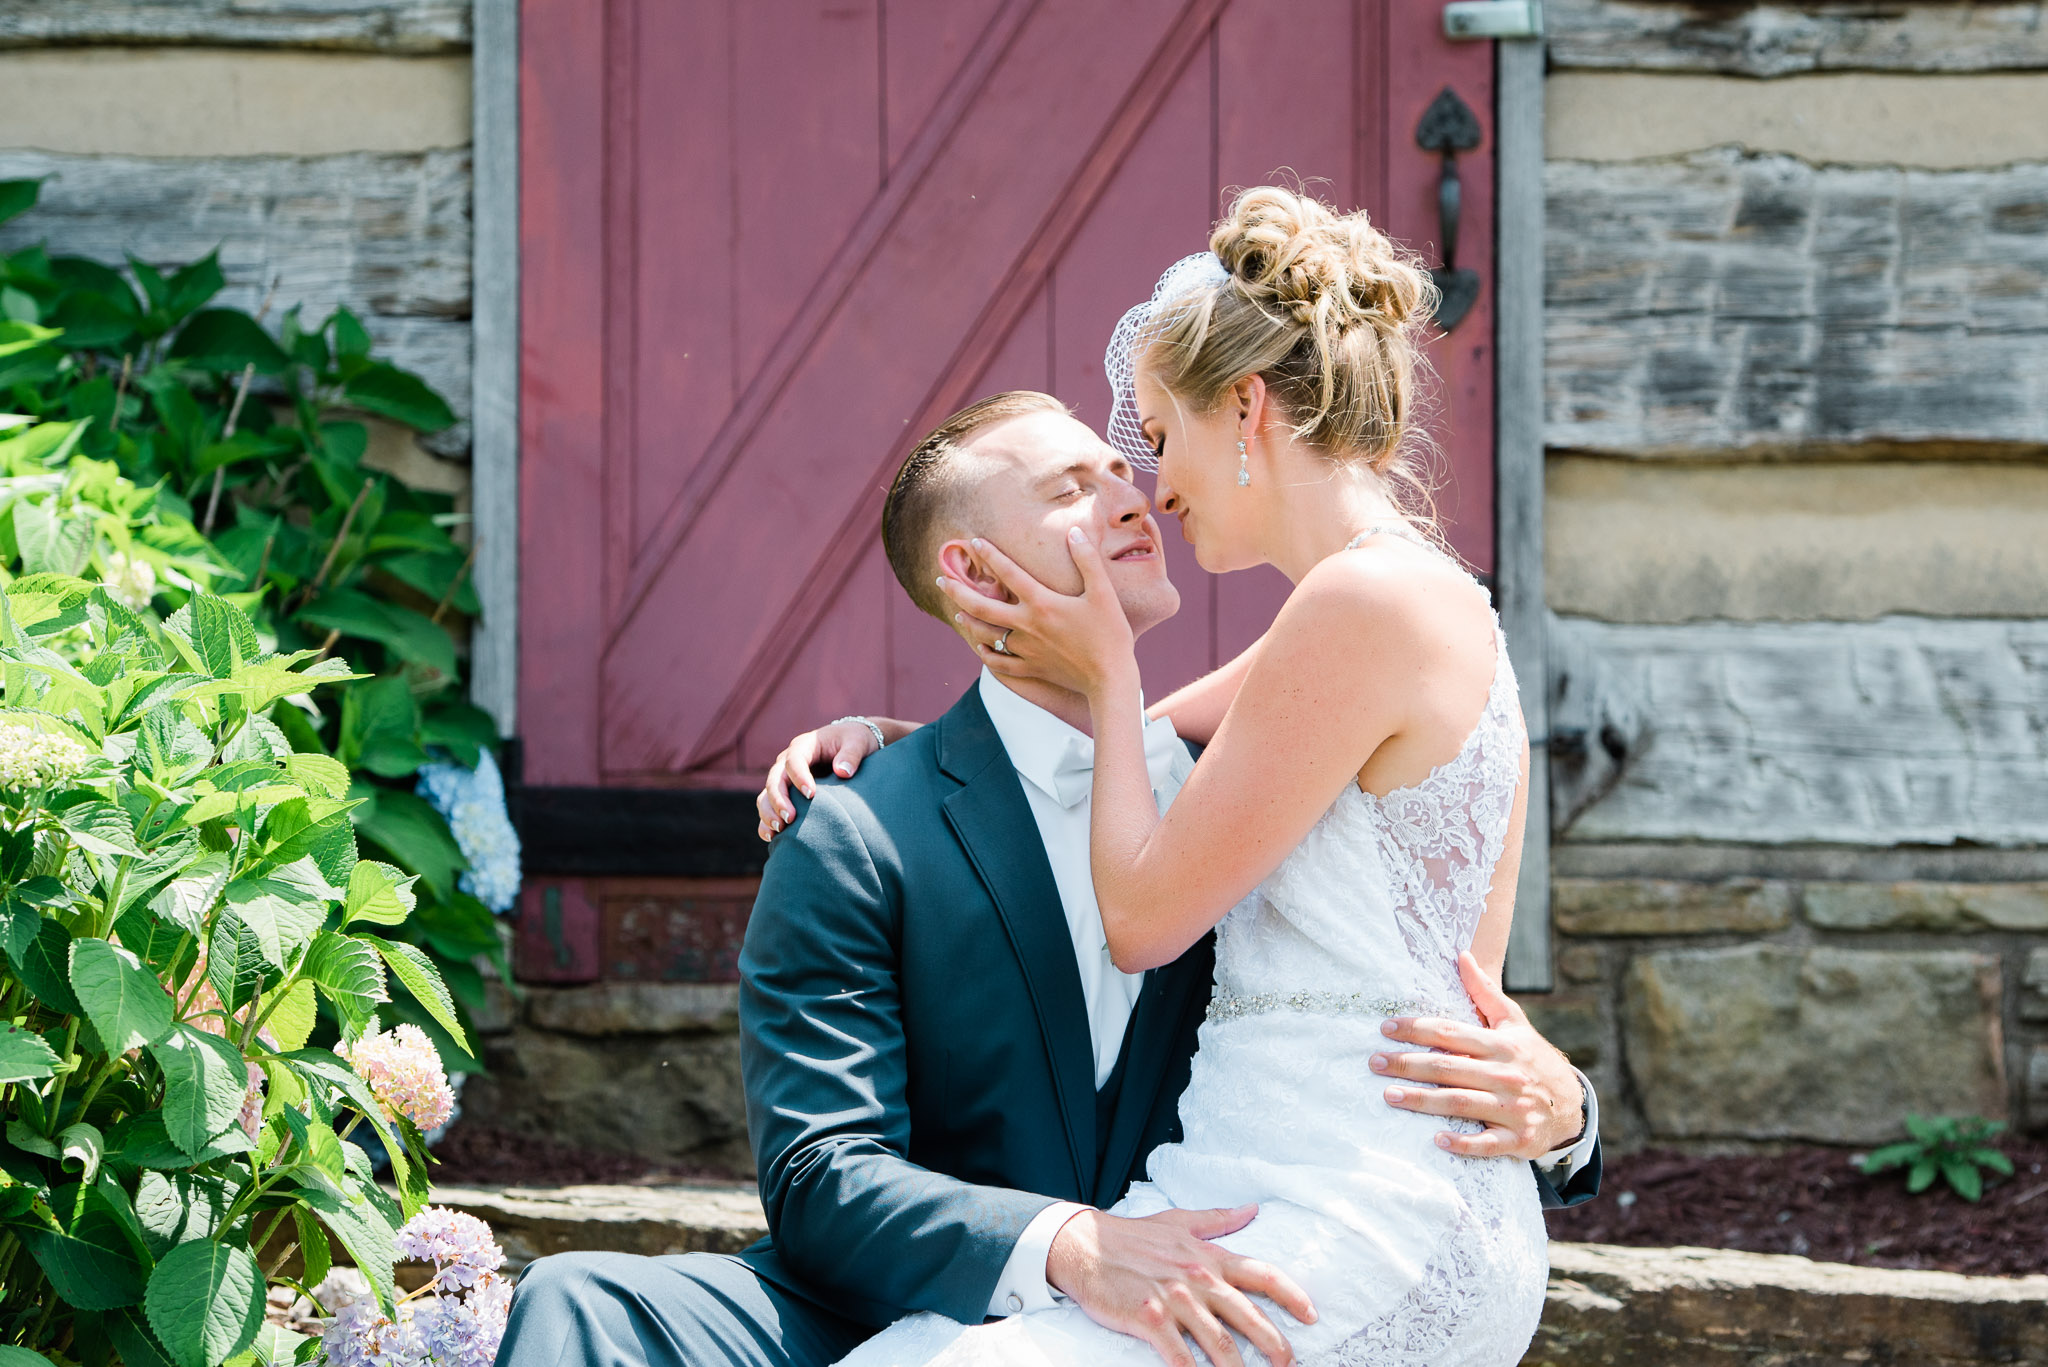 Bridal Portraits, Bride and Groom Foggy Mountain Stahlstown PA Wedding Photography-3715.jpg